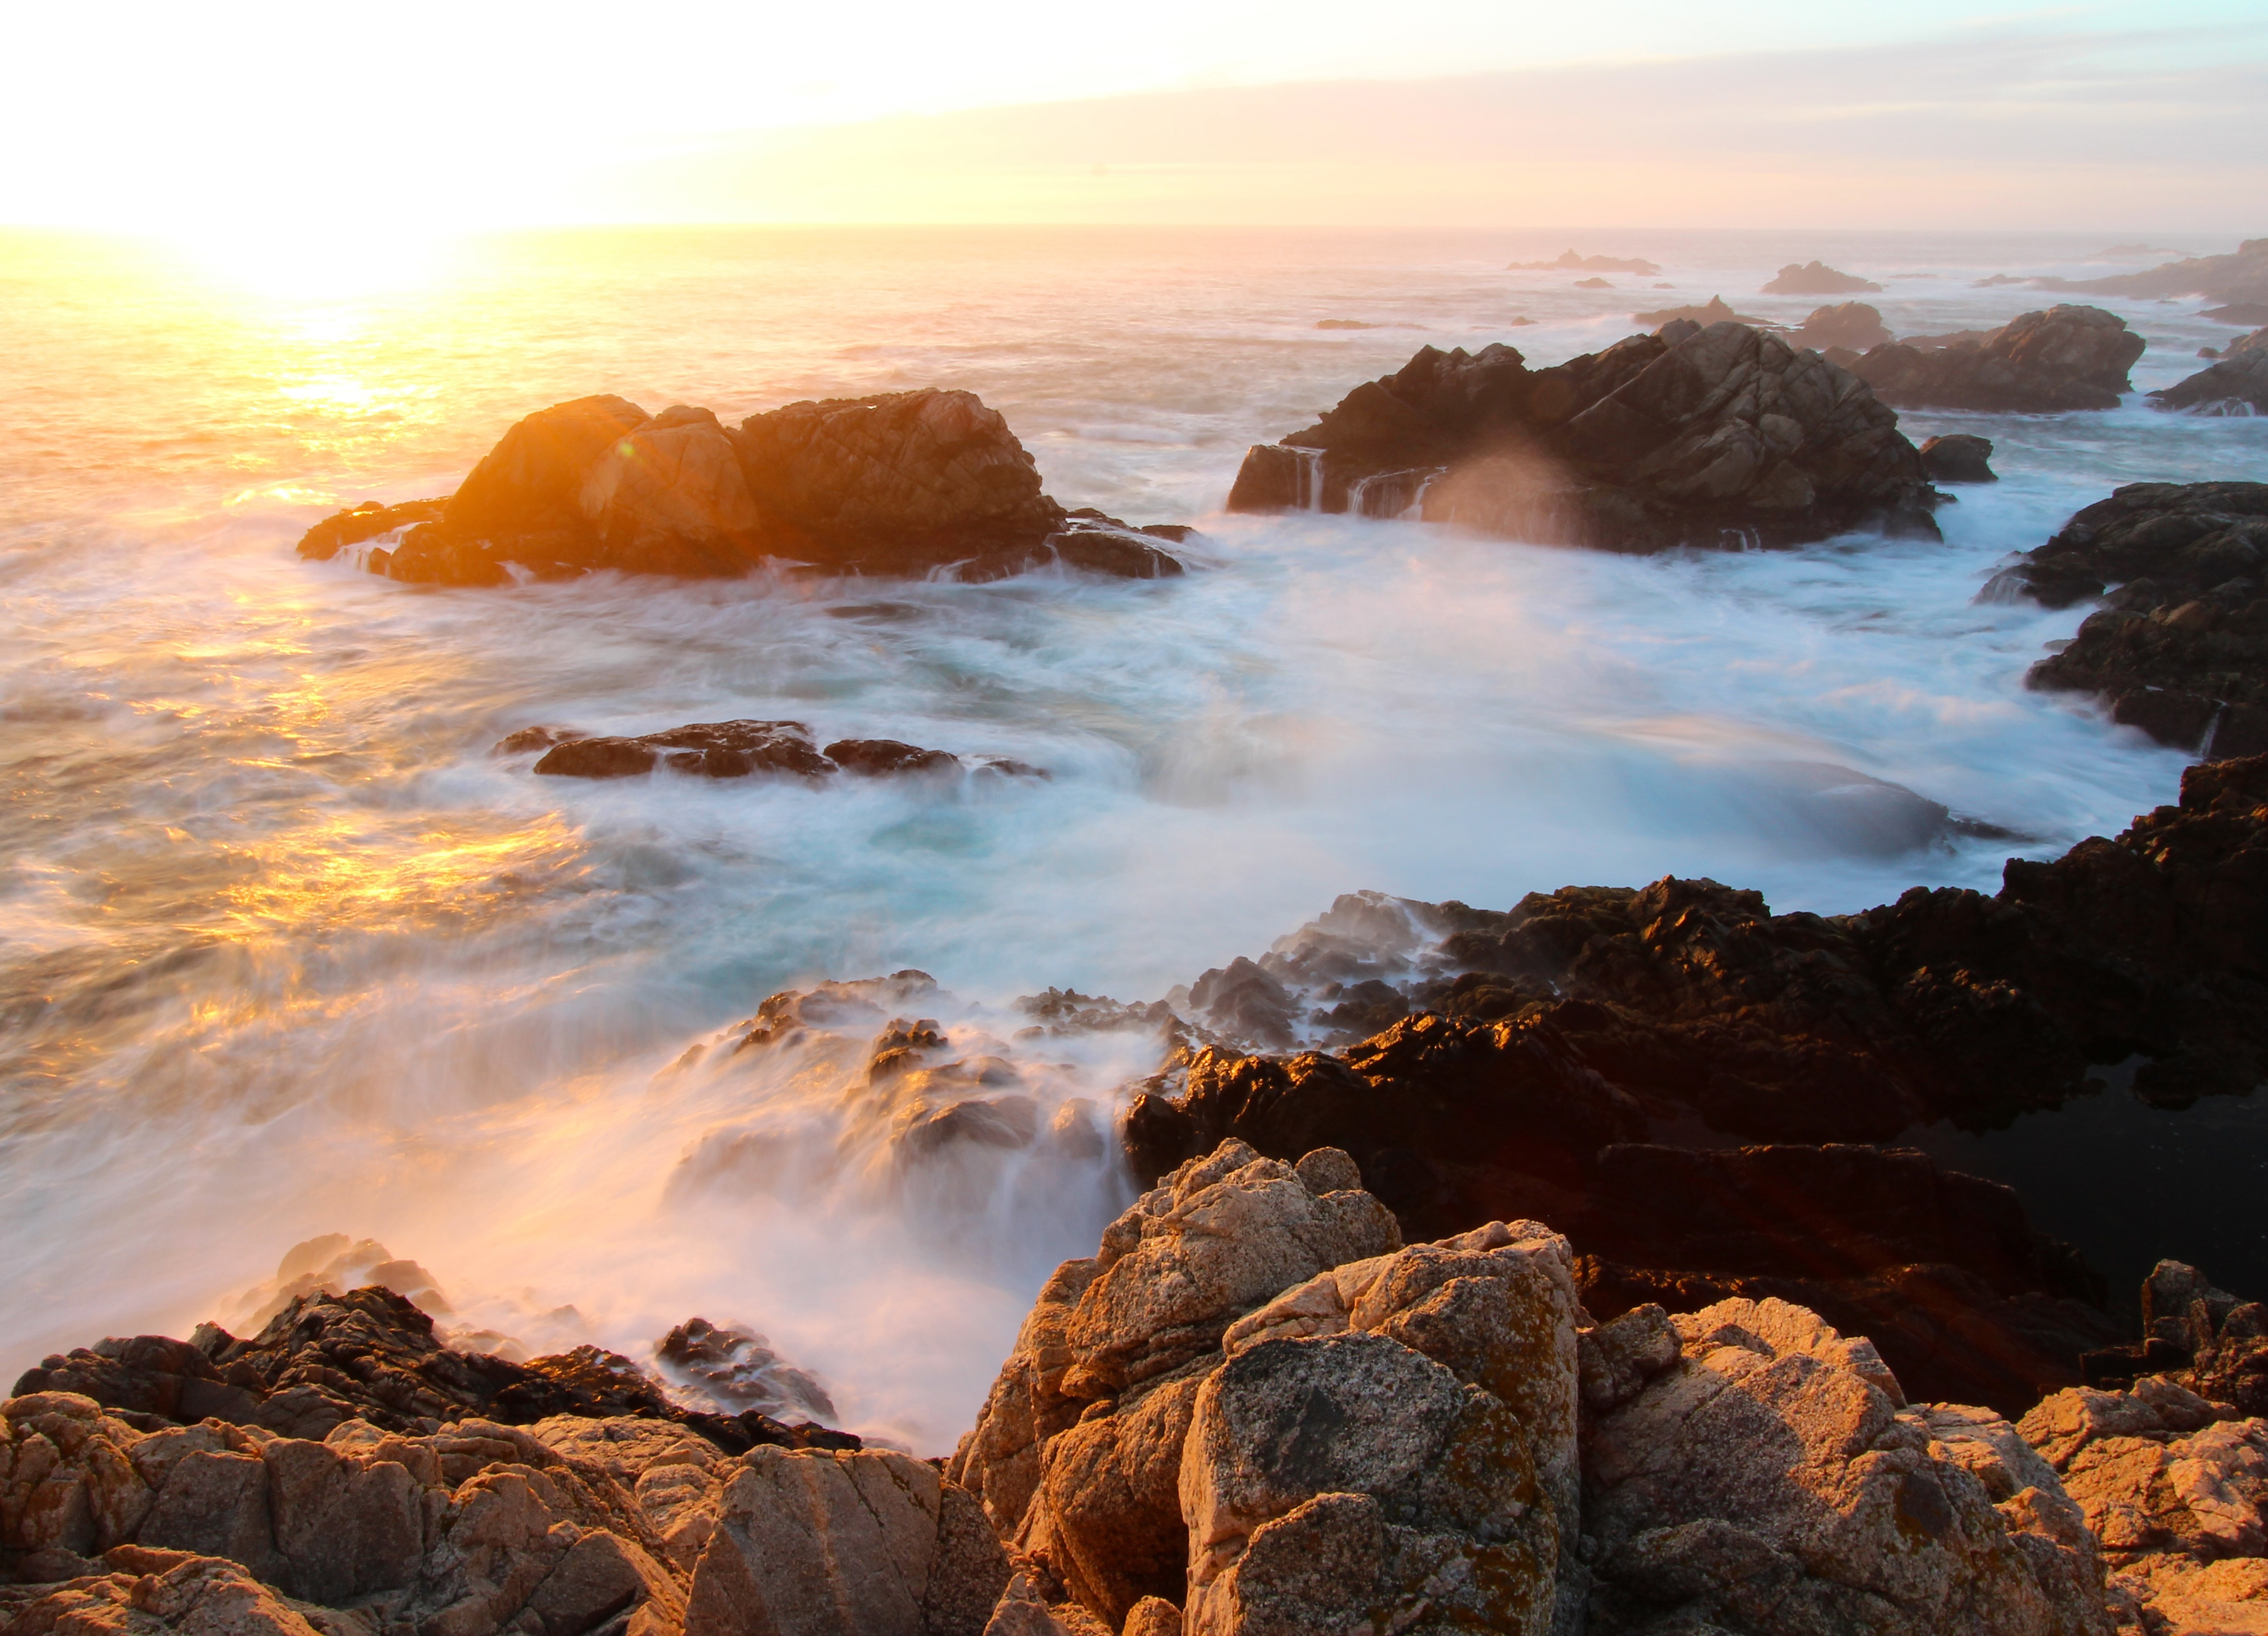 Fototapete »Sunset on Big Sur Coast« günstig online kaufen